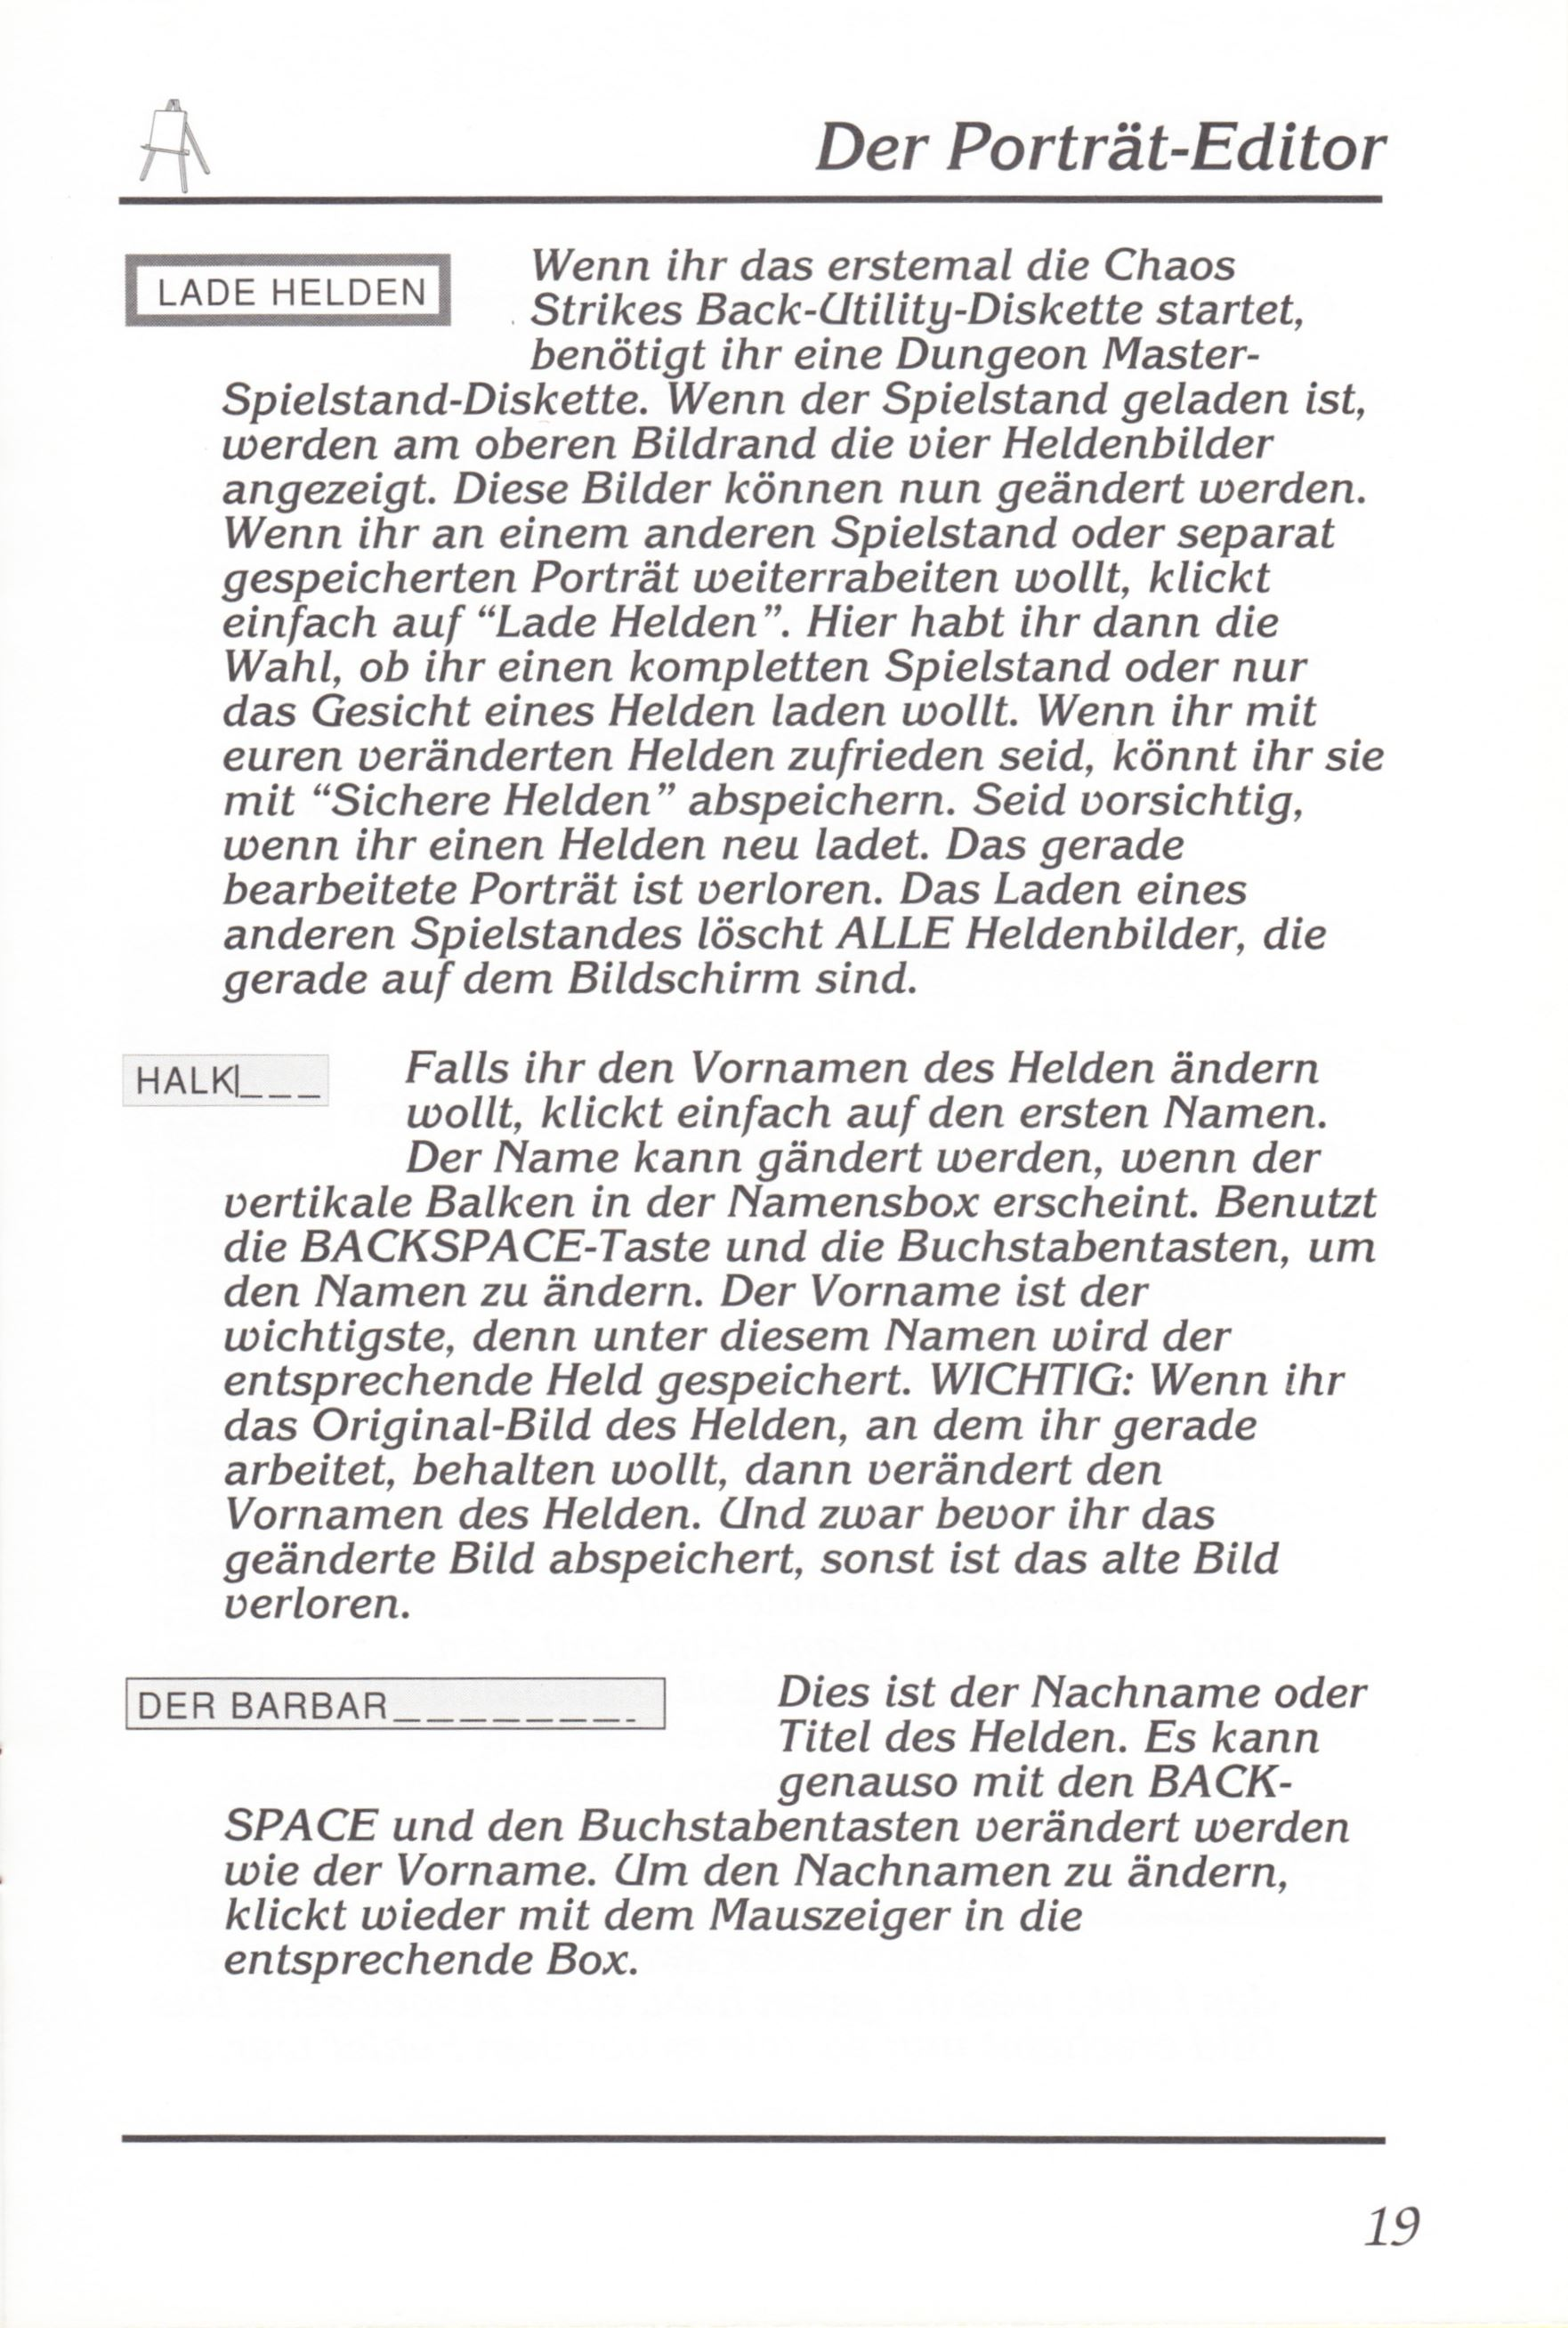 Game - Chaos Strikes Back - DE - Amiga - Manual - Page 021 - Scan